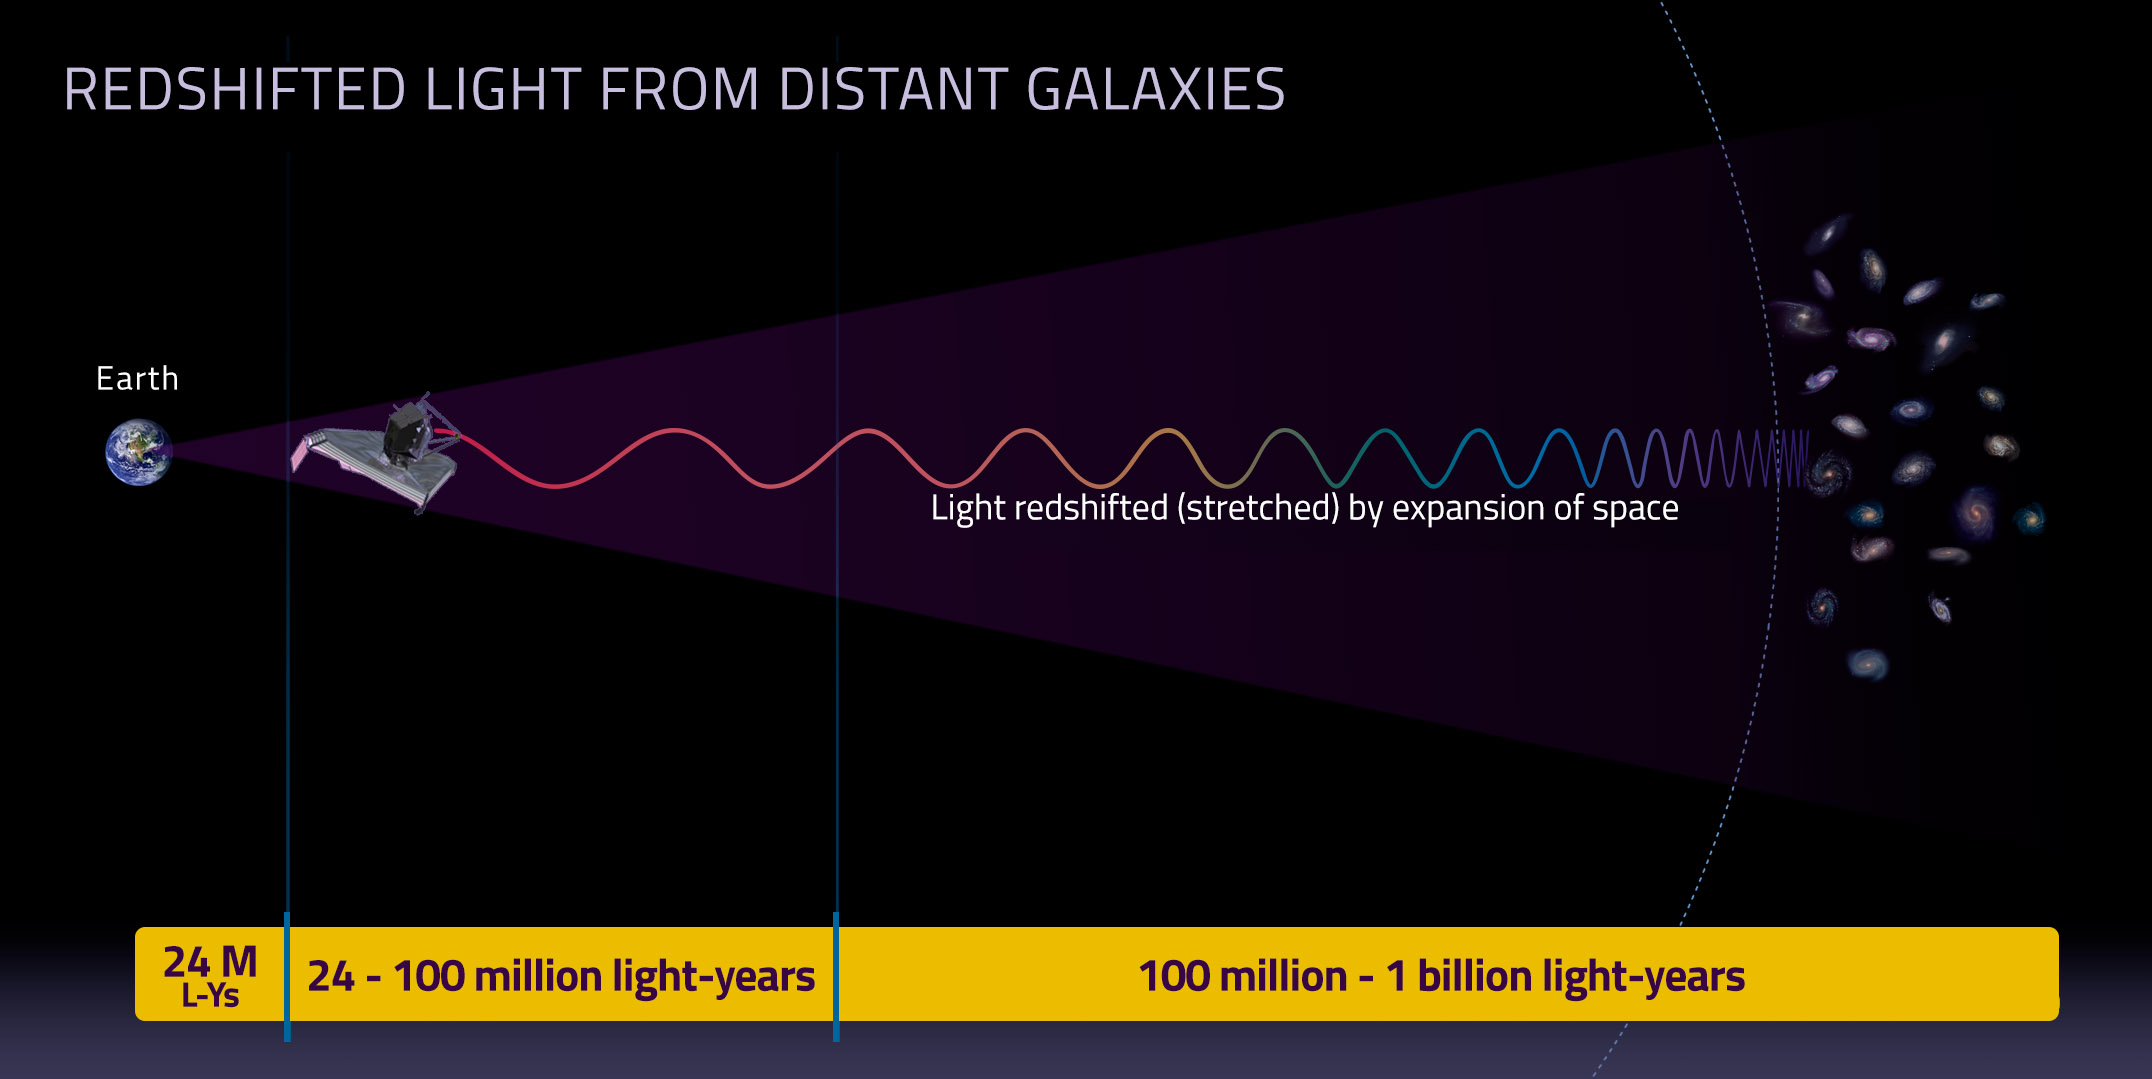 Redshifted light from distant galaxies - infographic